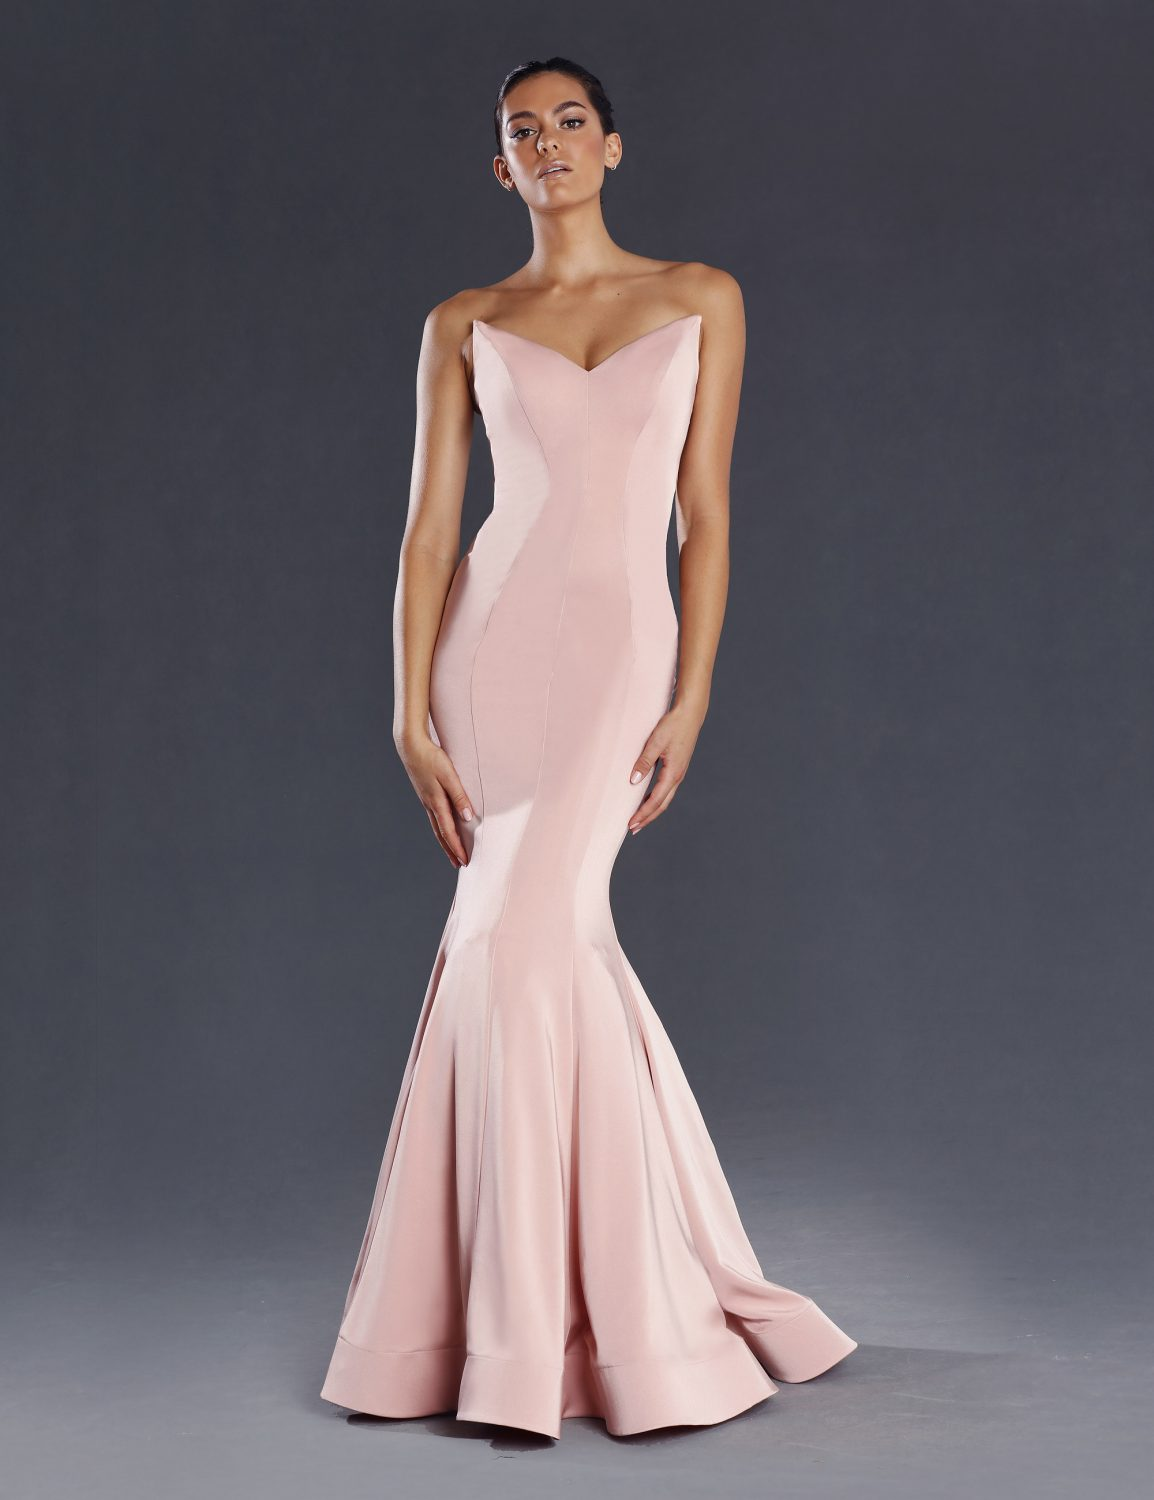 Lorde Strapless fitted Formal Dress